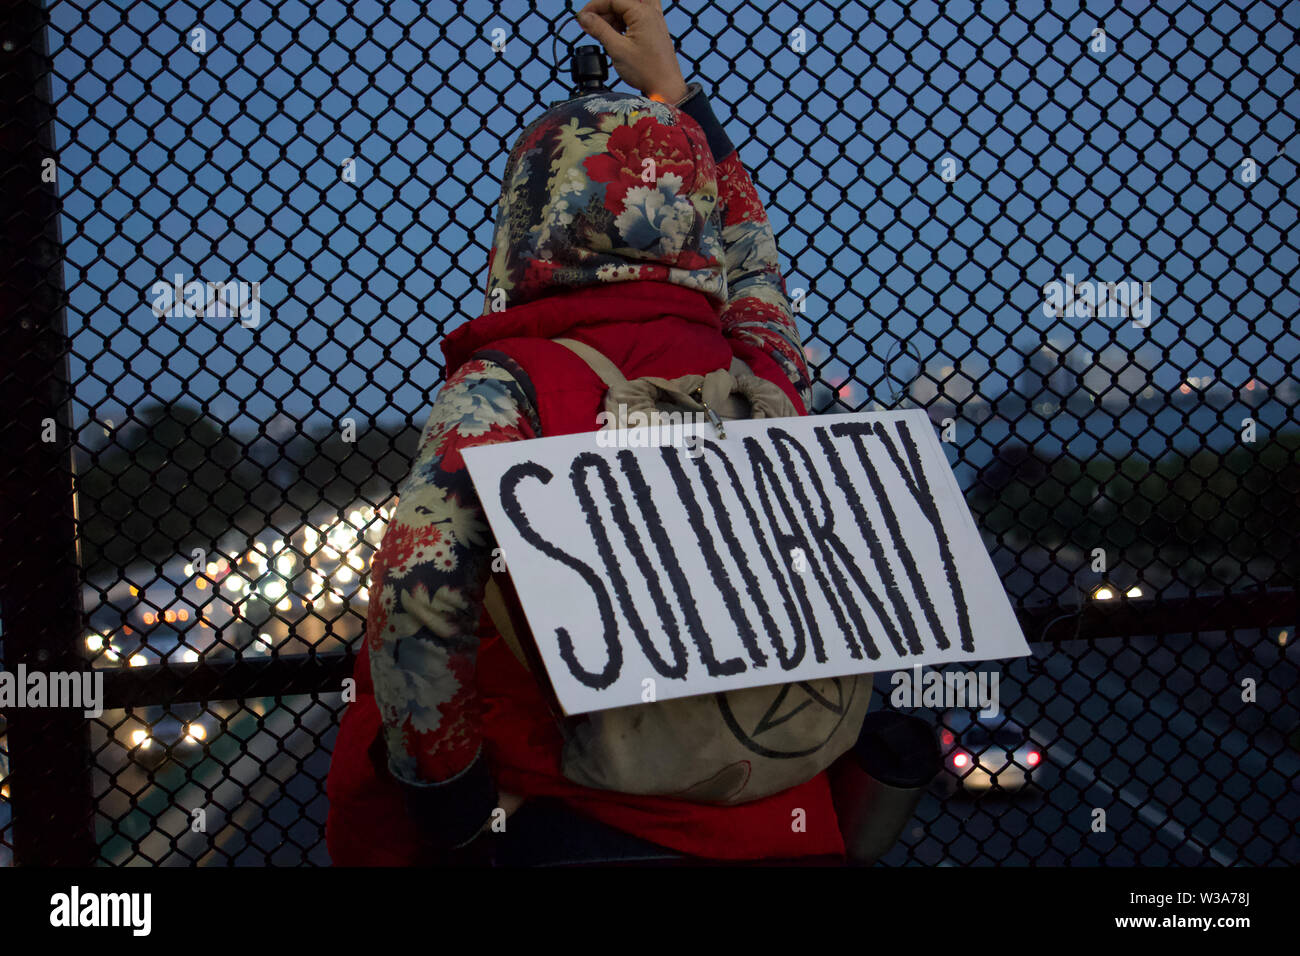 protestor-with-solidarity-sign-over-highway-lights-for-liberty-vigil-to-protest-us-detention-centers-and-ice-camps-for-immigrant-children-berkeley-W3A78J.jpg